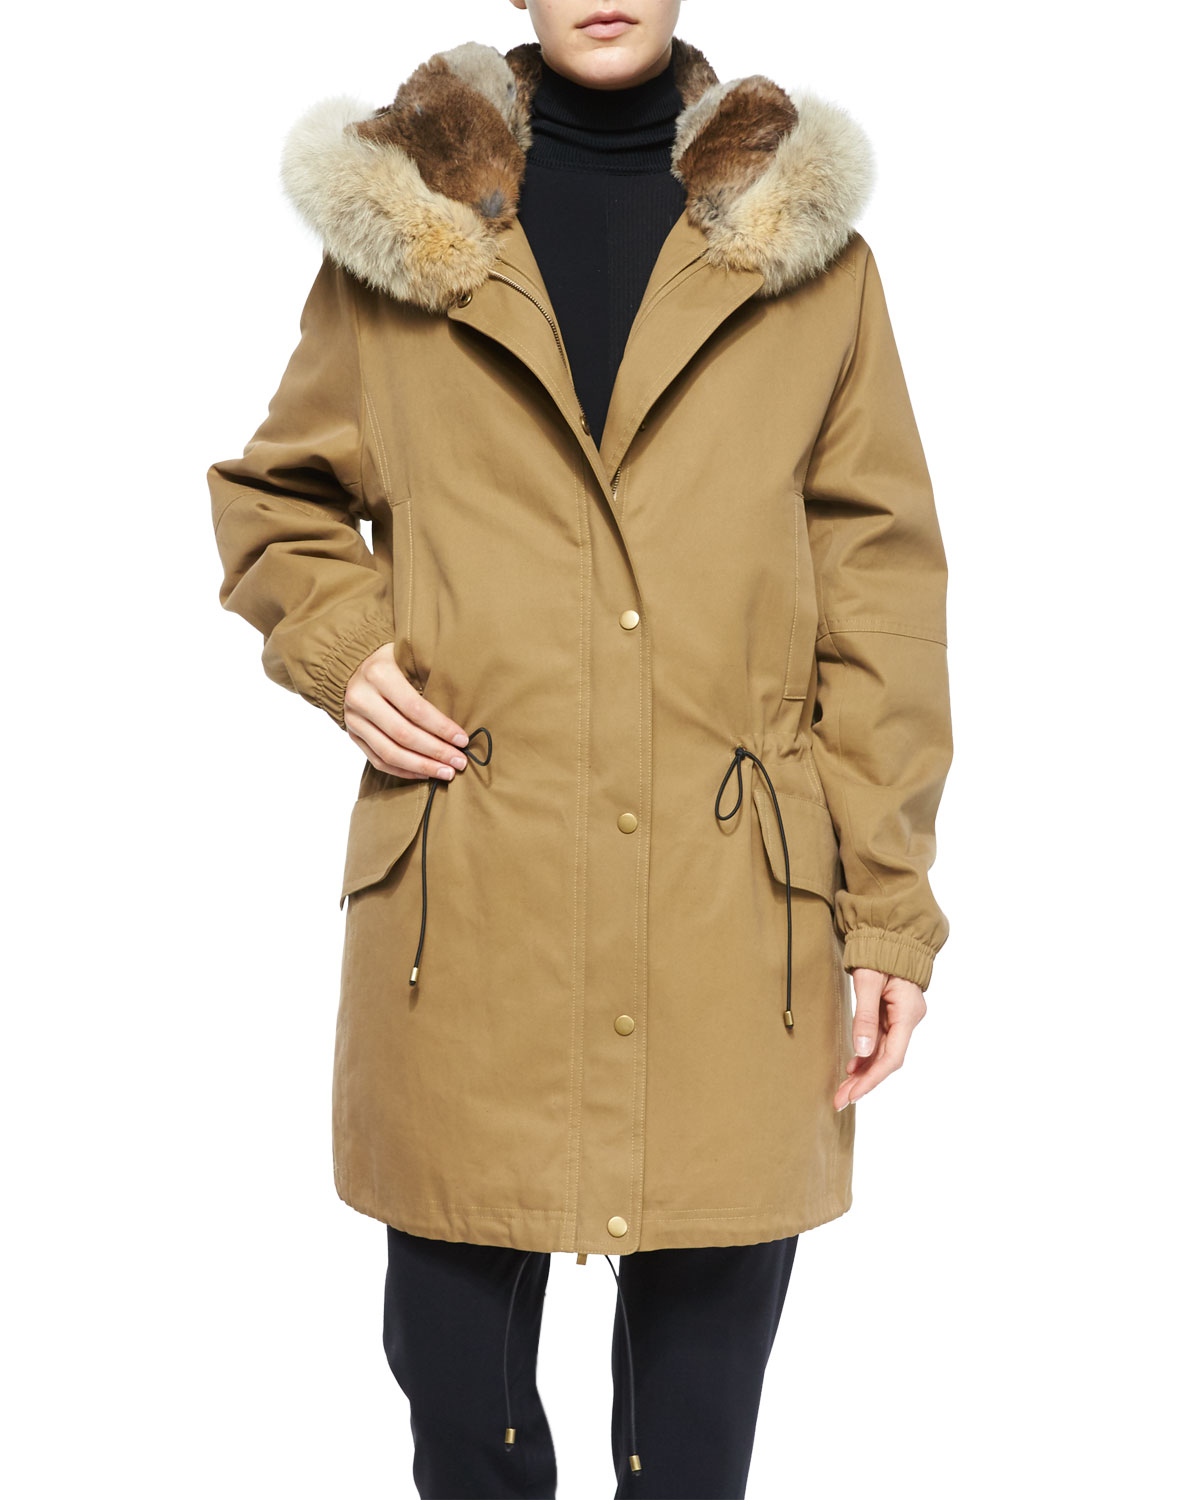 Vince Fur-Lined Parka Coat in Natural | Lyst